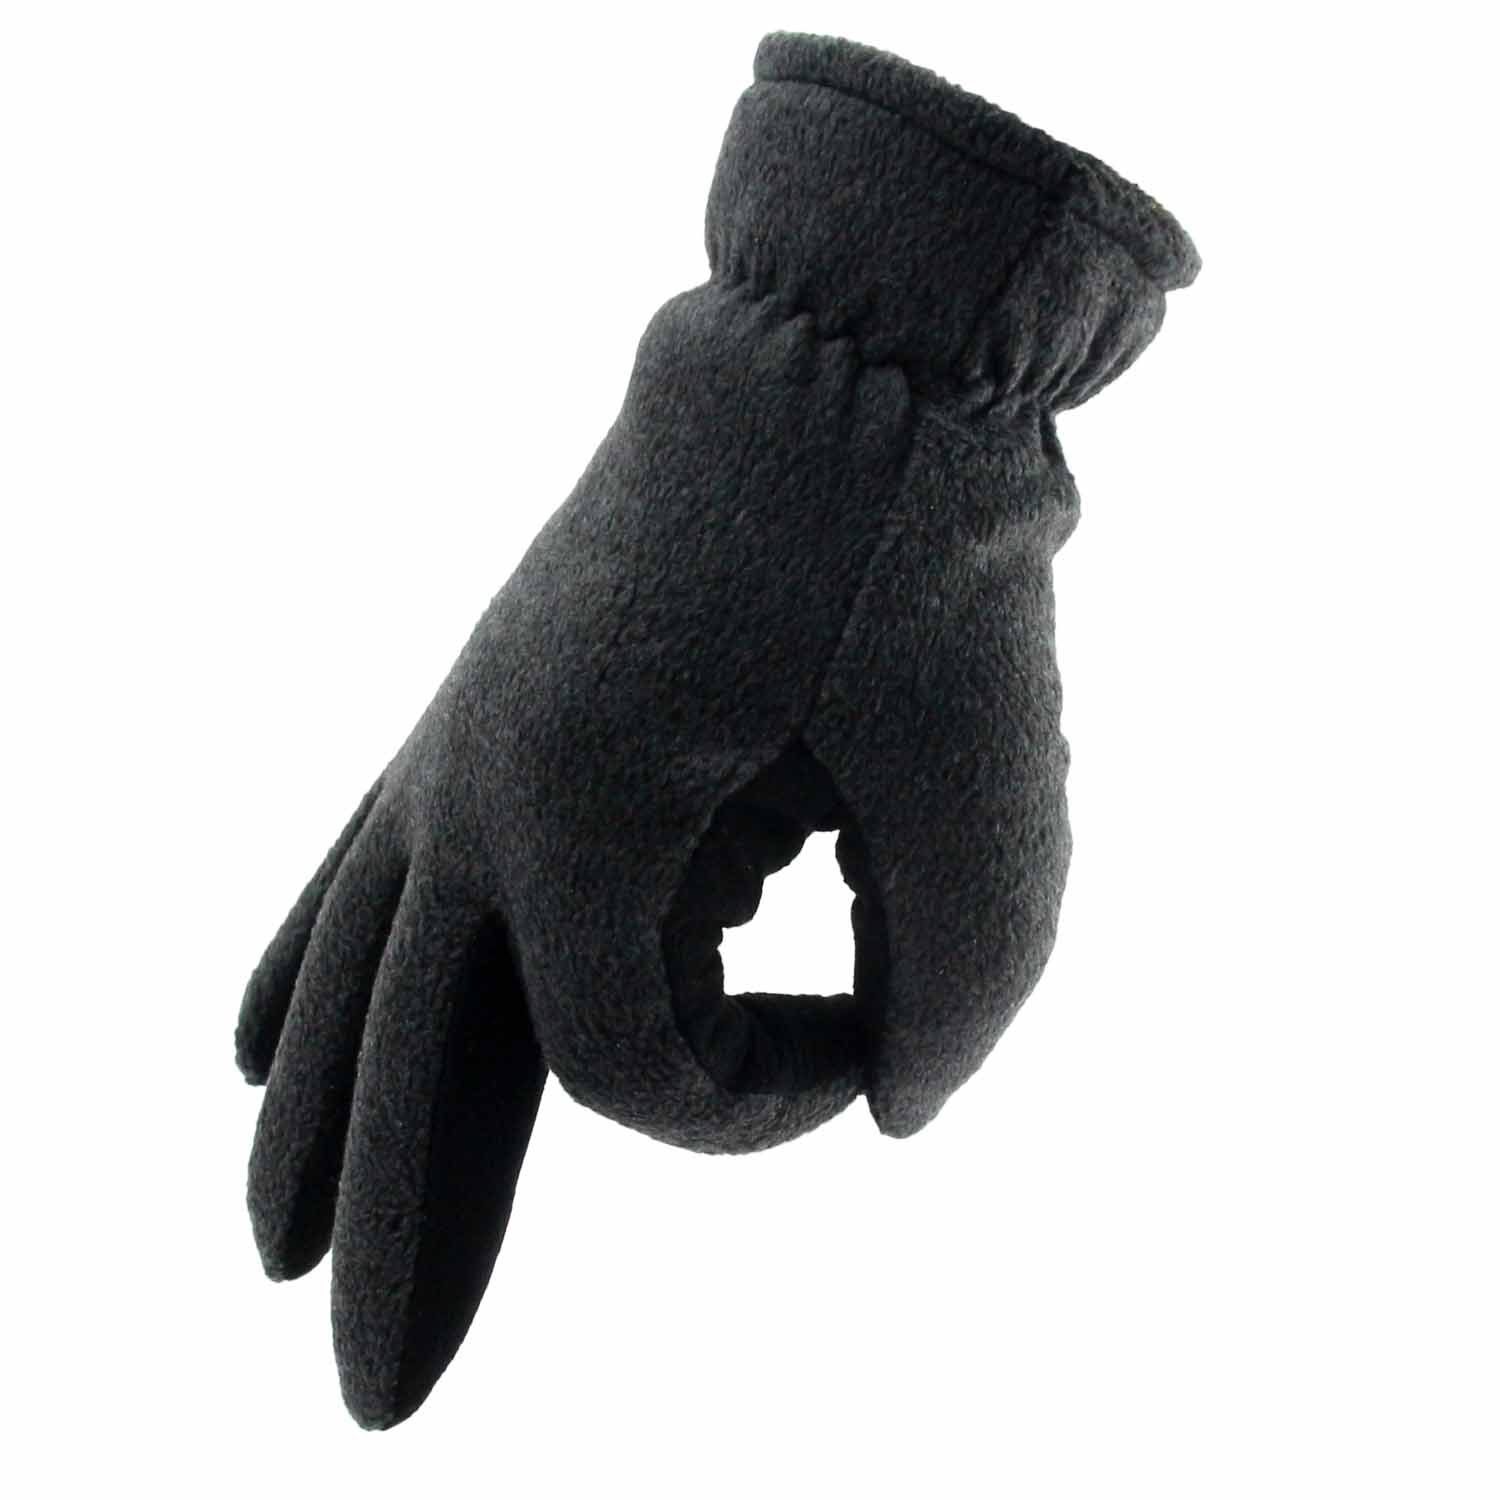 Buy Ozero Winter Gloves Now!